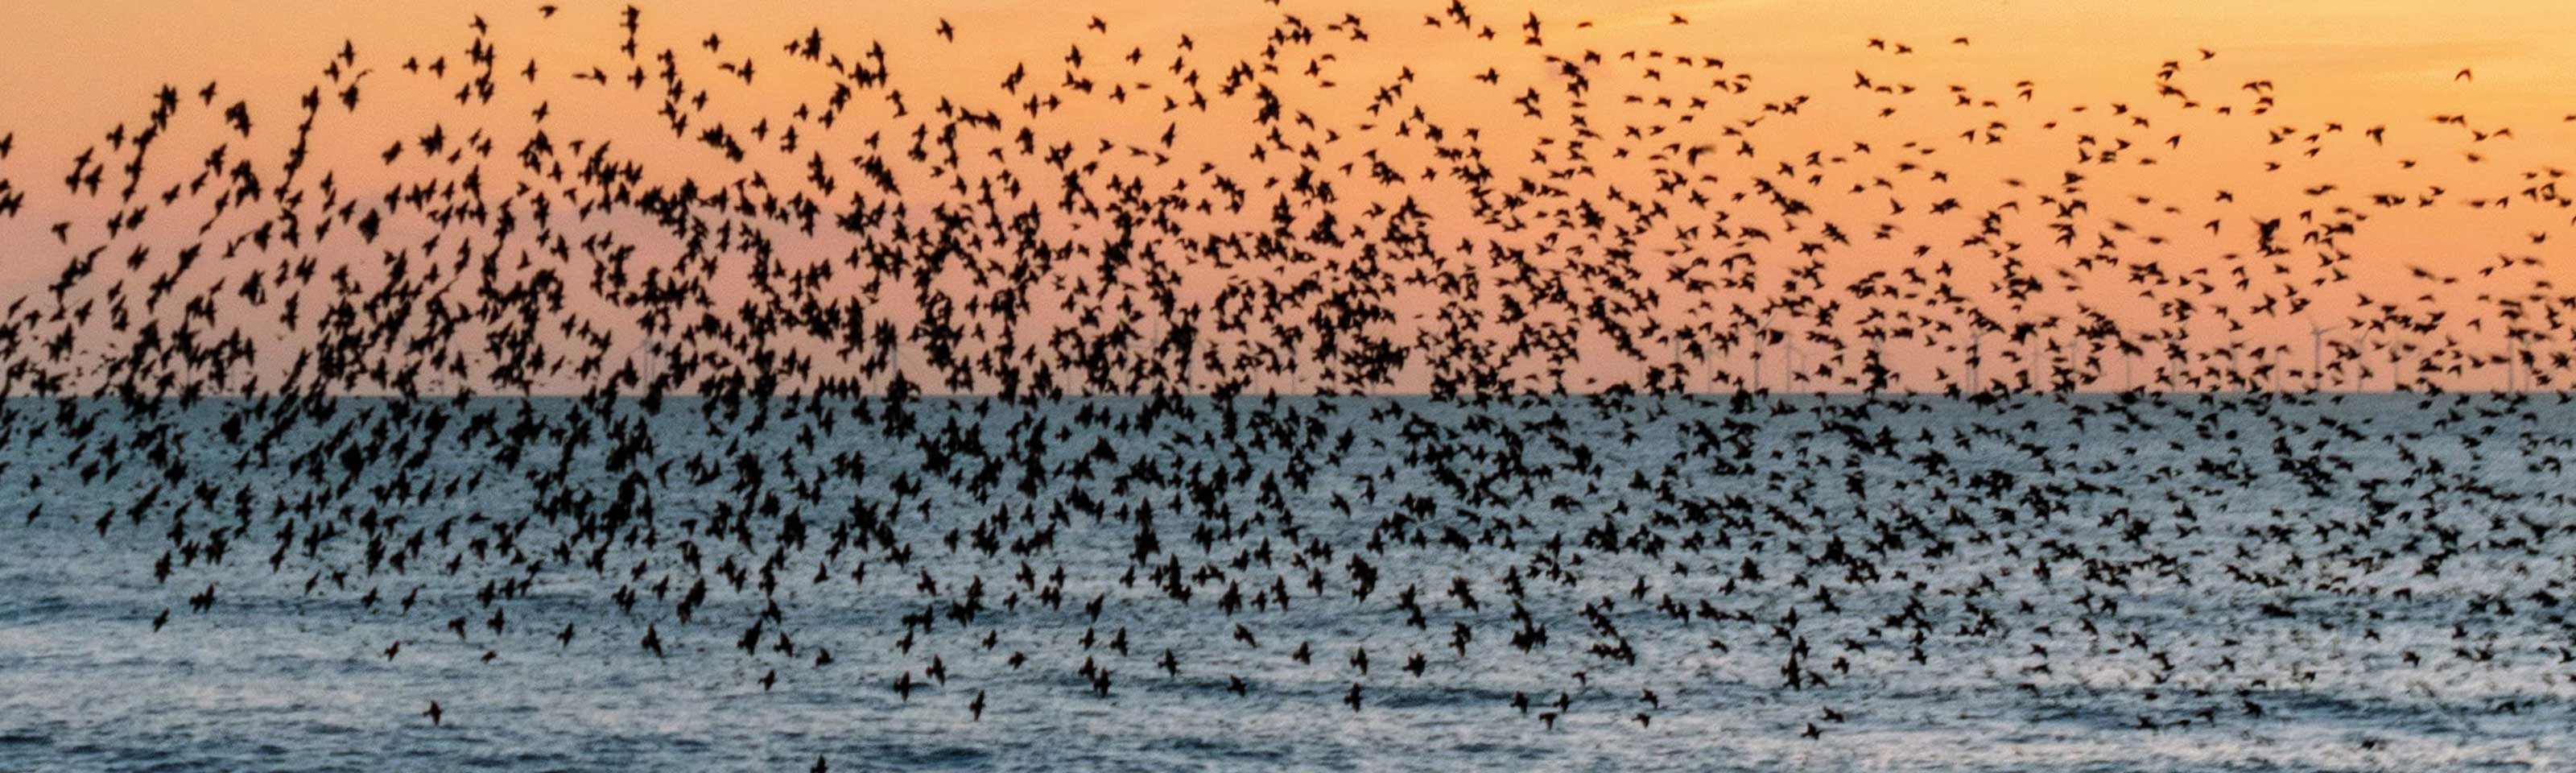 Murmuration of starlings over Brighton pier